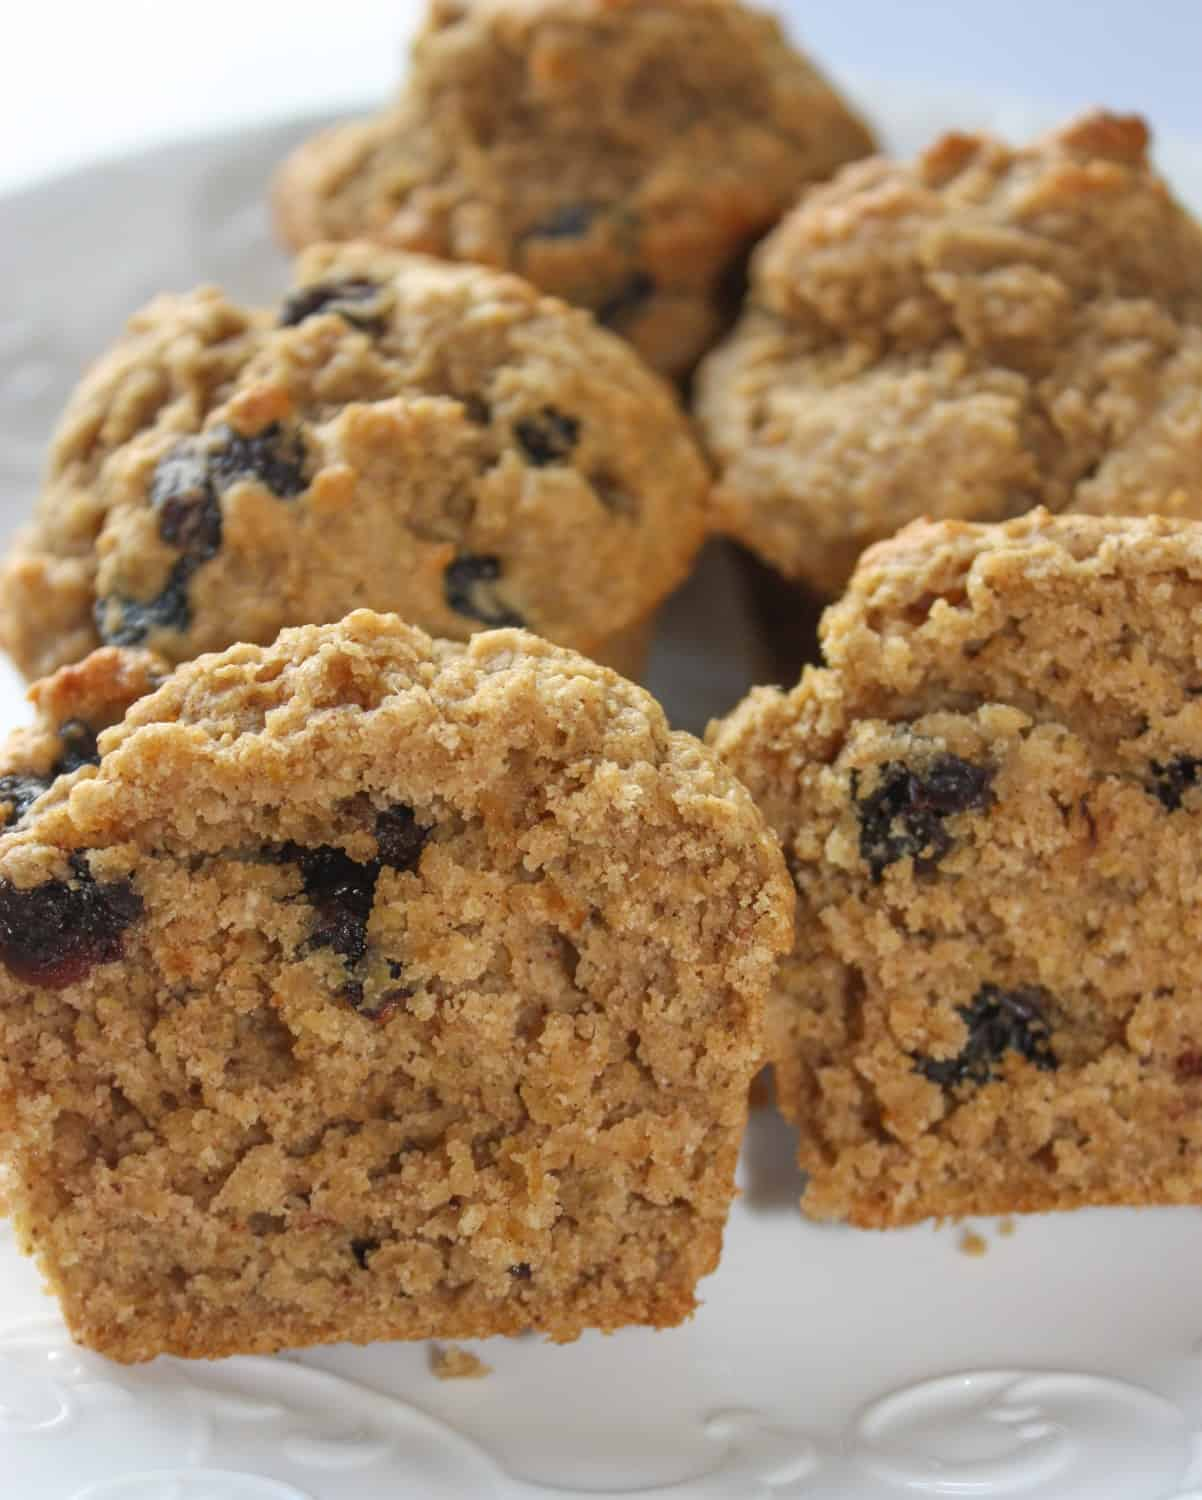 Raisin Oat Bran Muffins are a tasty way to add fibre to your diet.Finding gluten free oat bran means bran muffins are back even for the gluten intolerant!